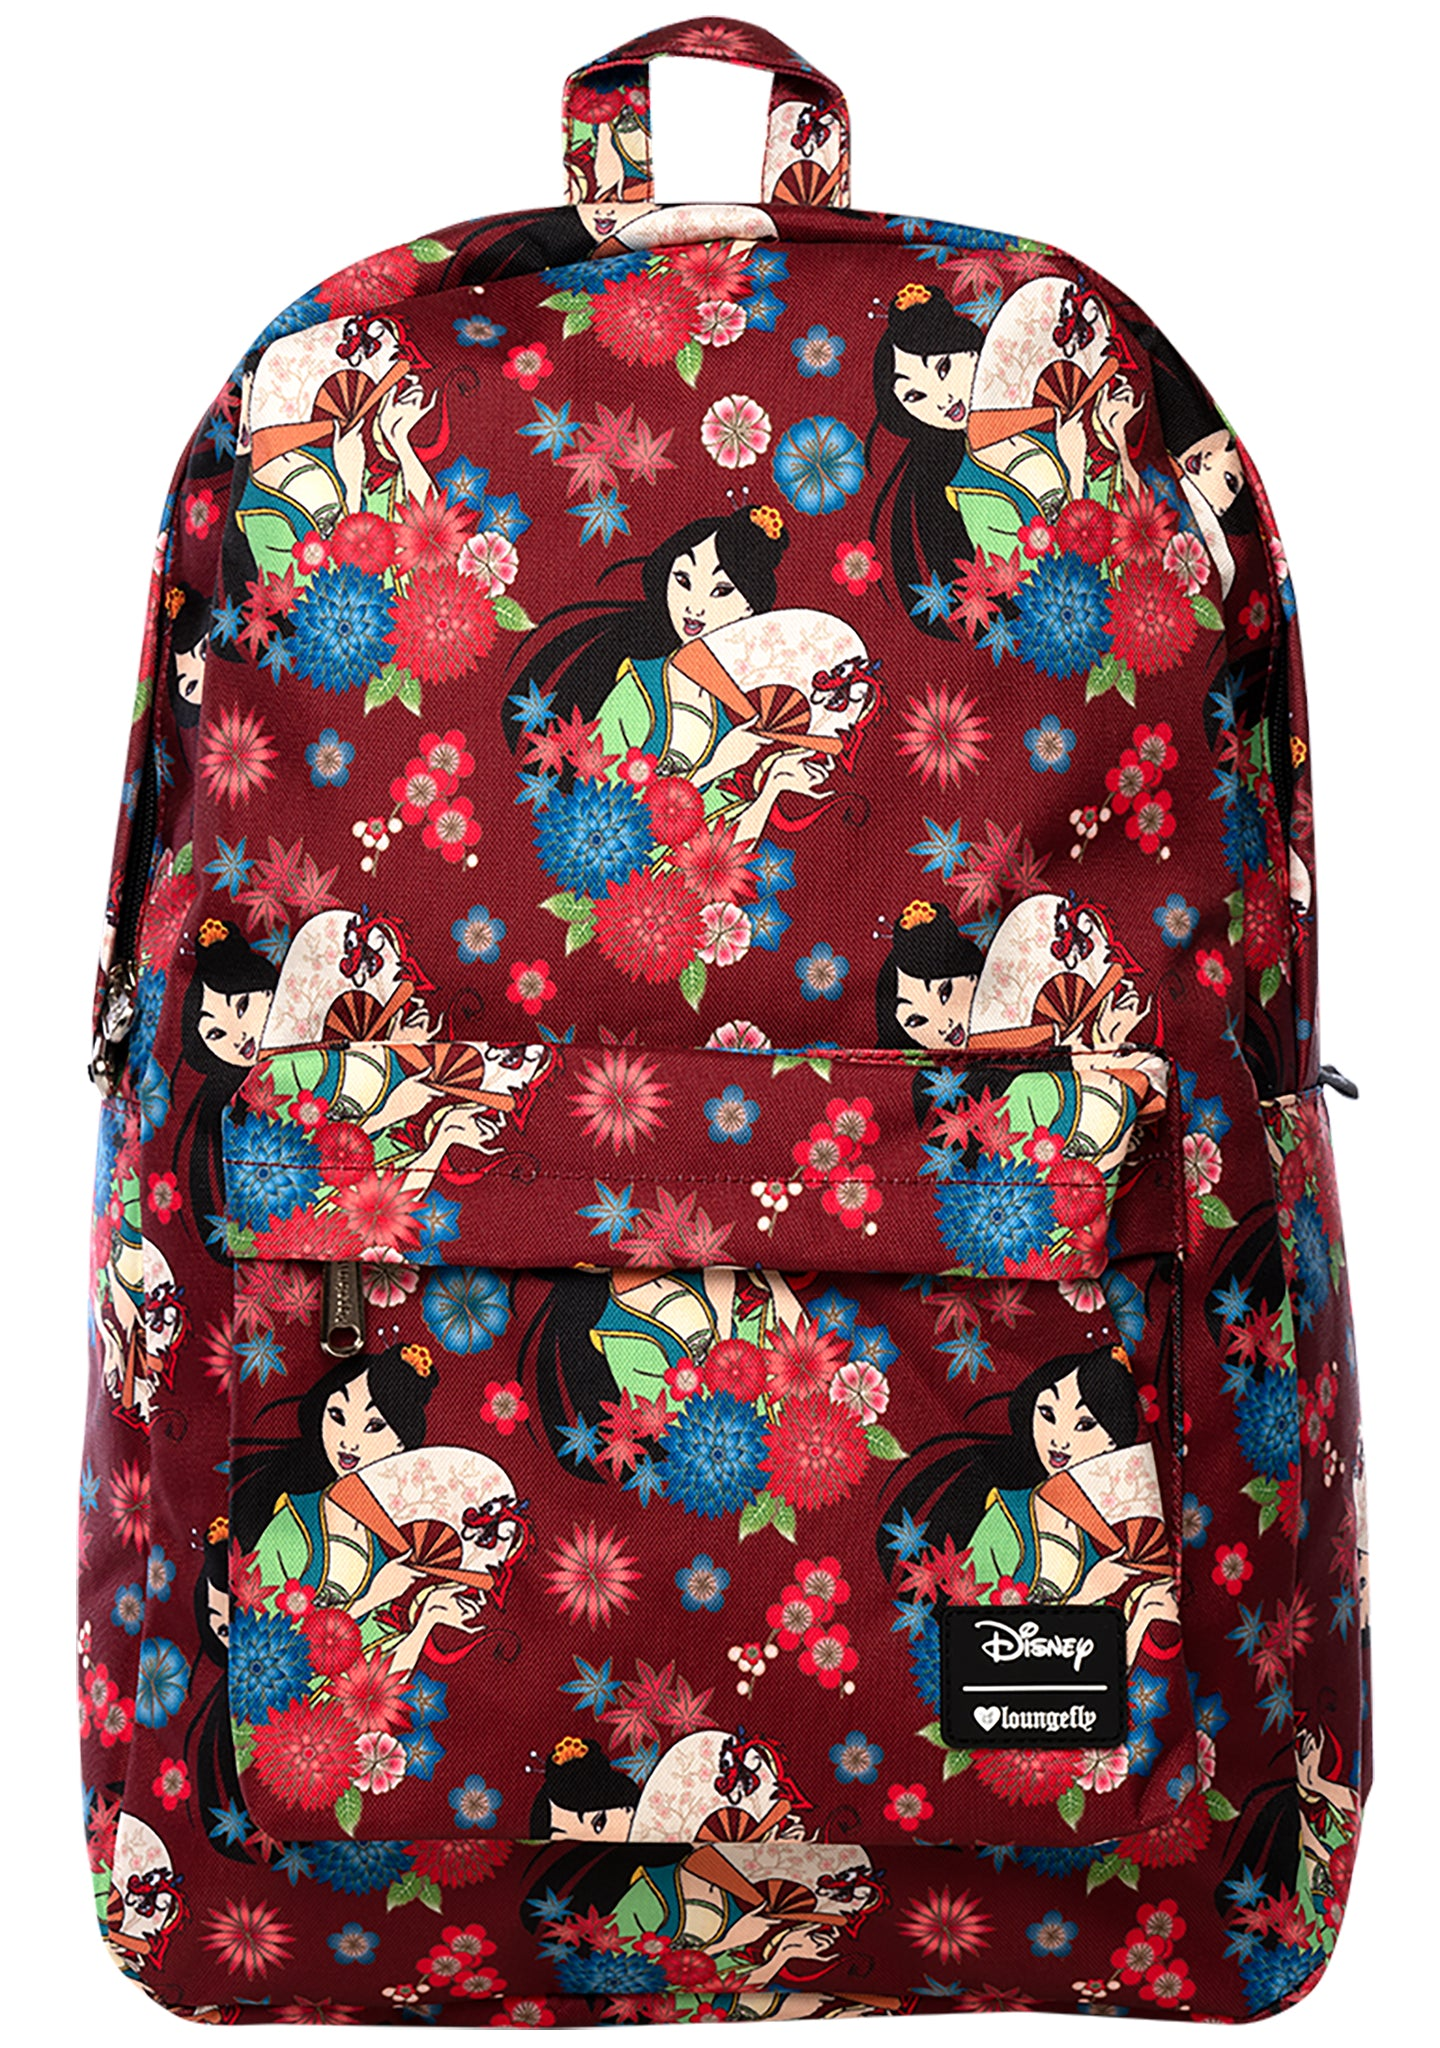 Loungefly X Disney Mulan Floral Fan Backpack